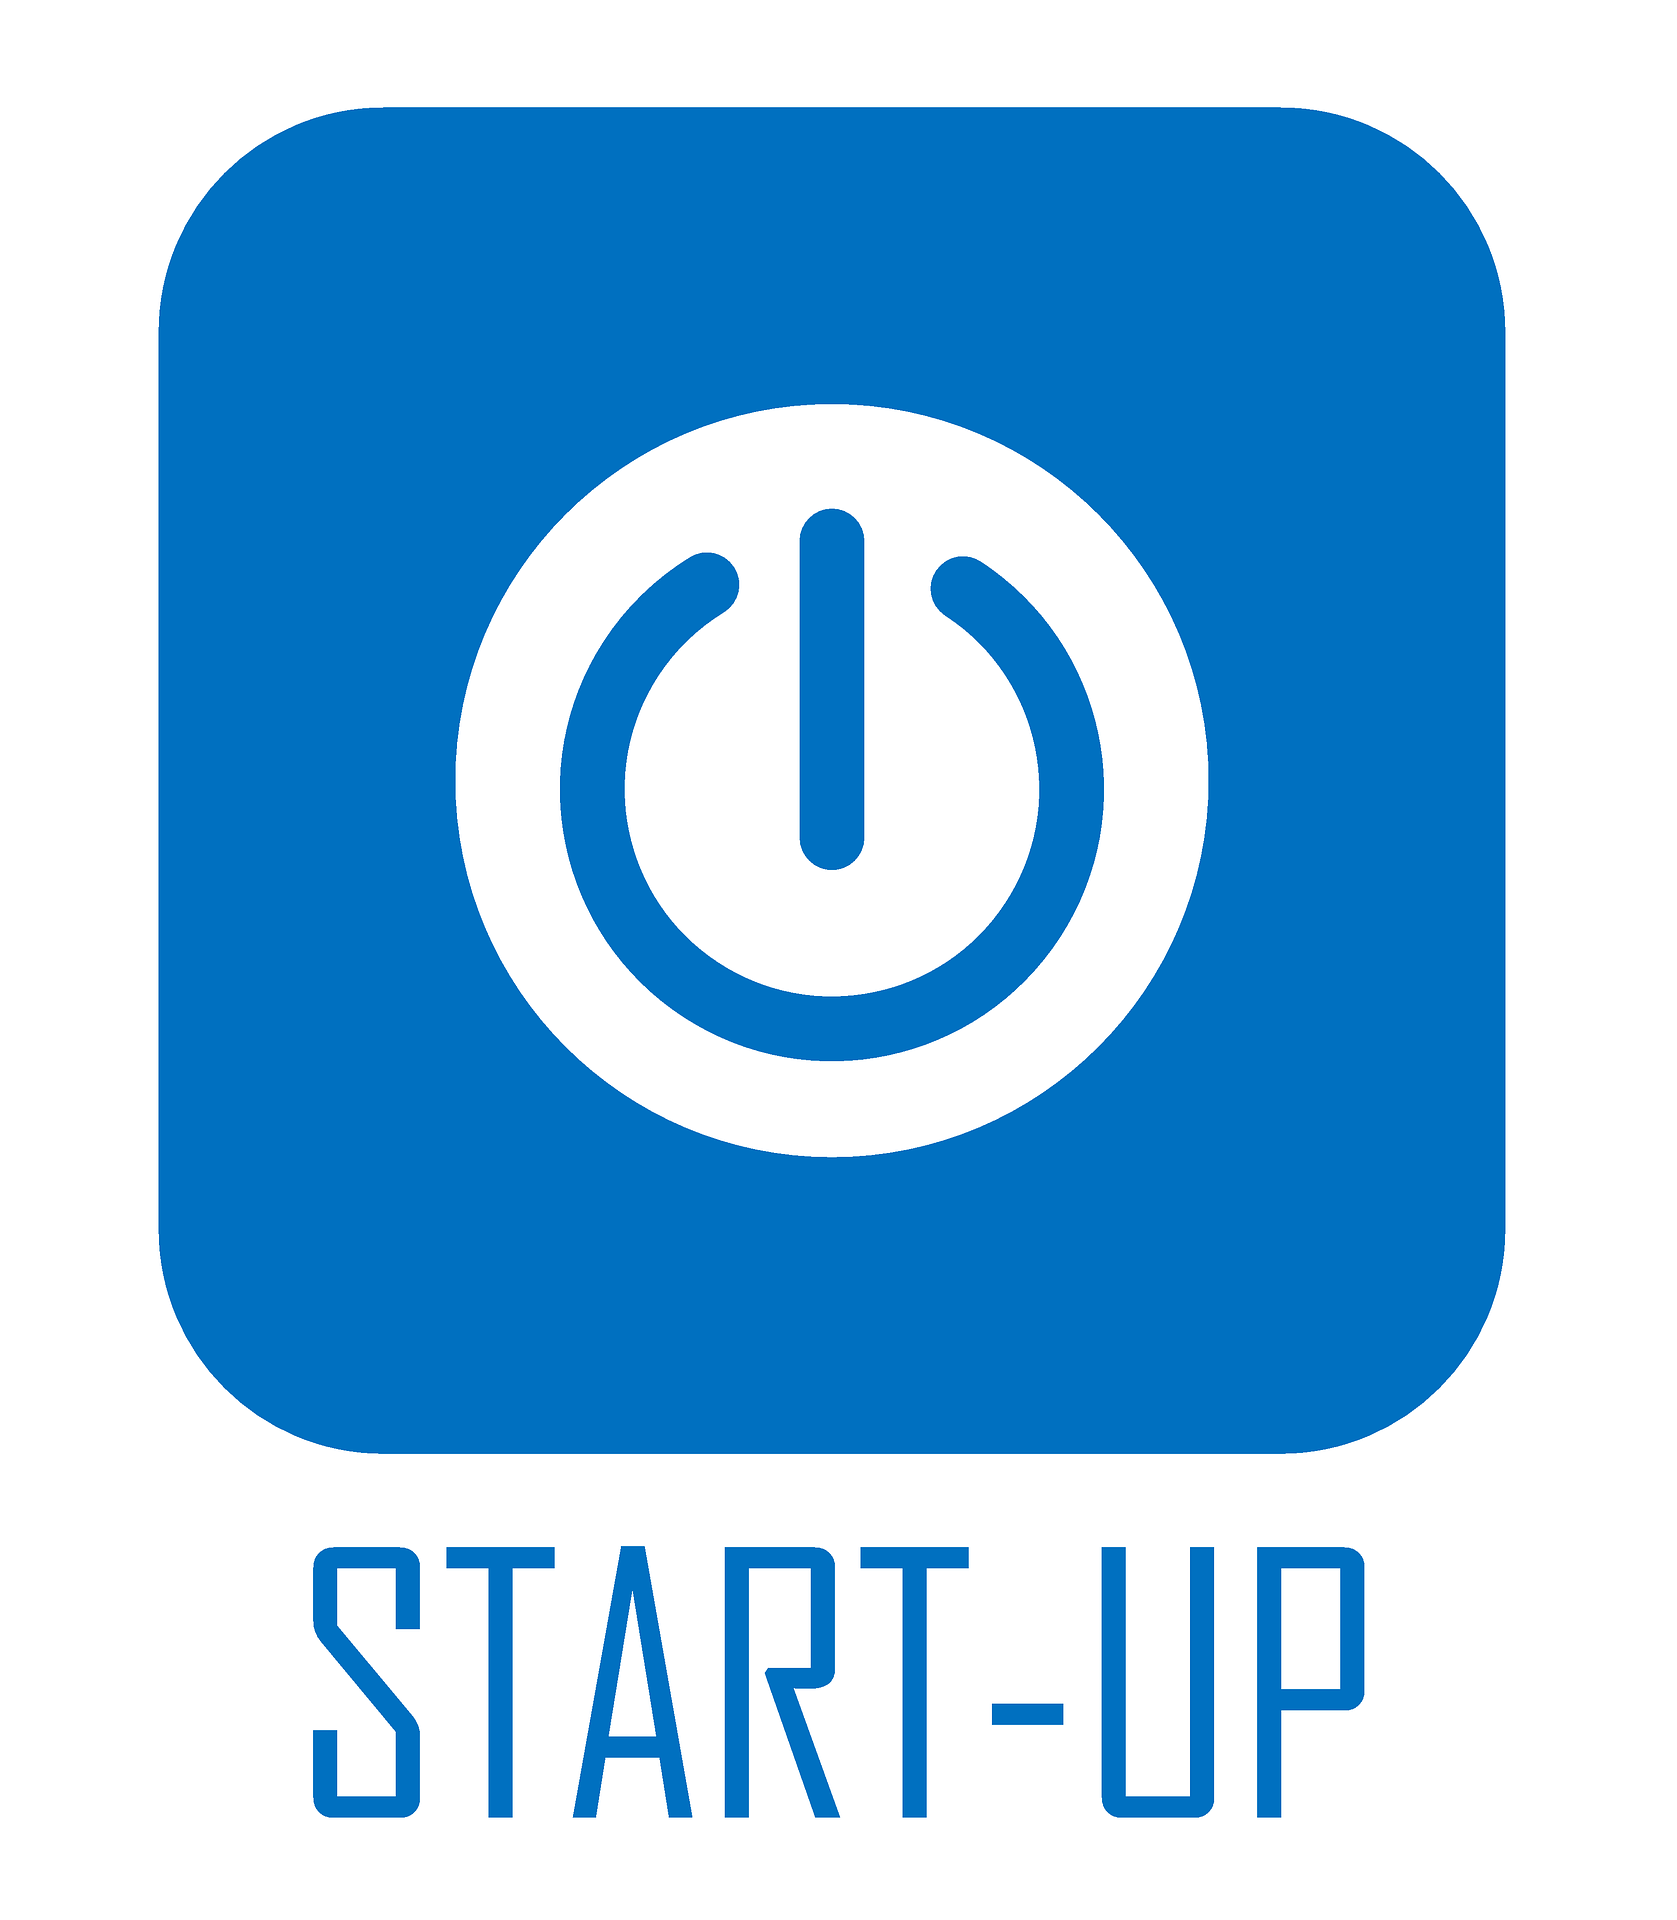 Starting a business - Start ups